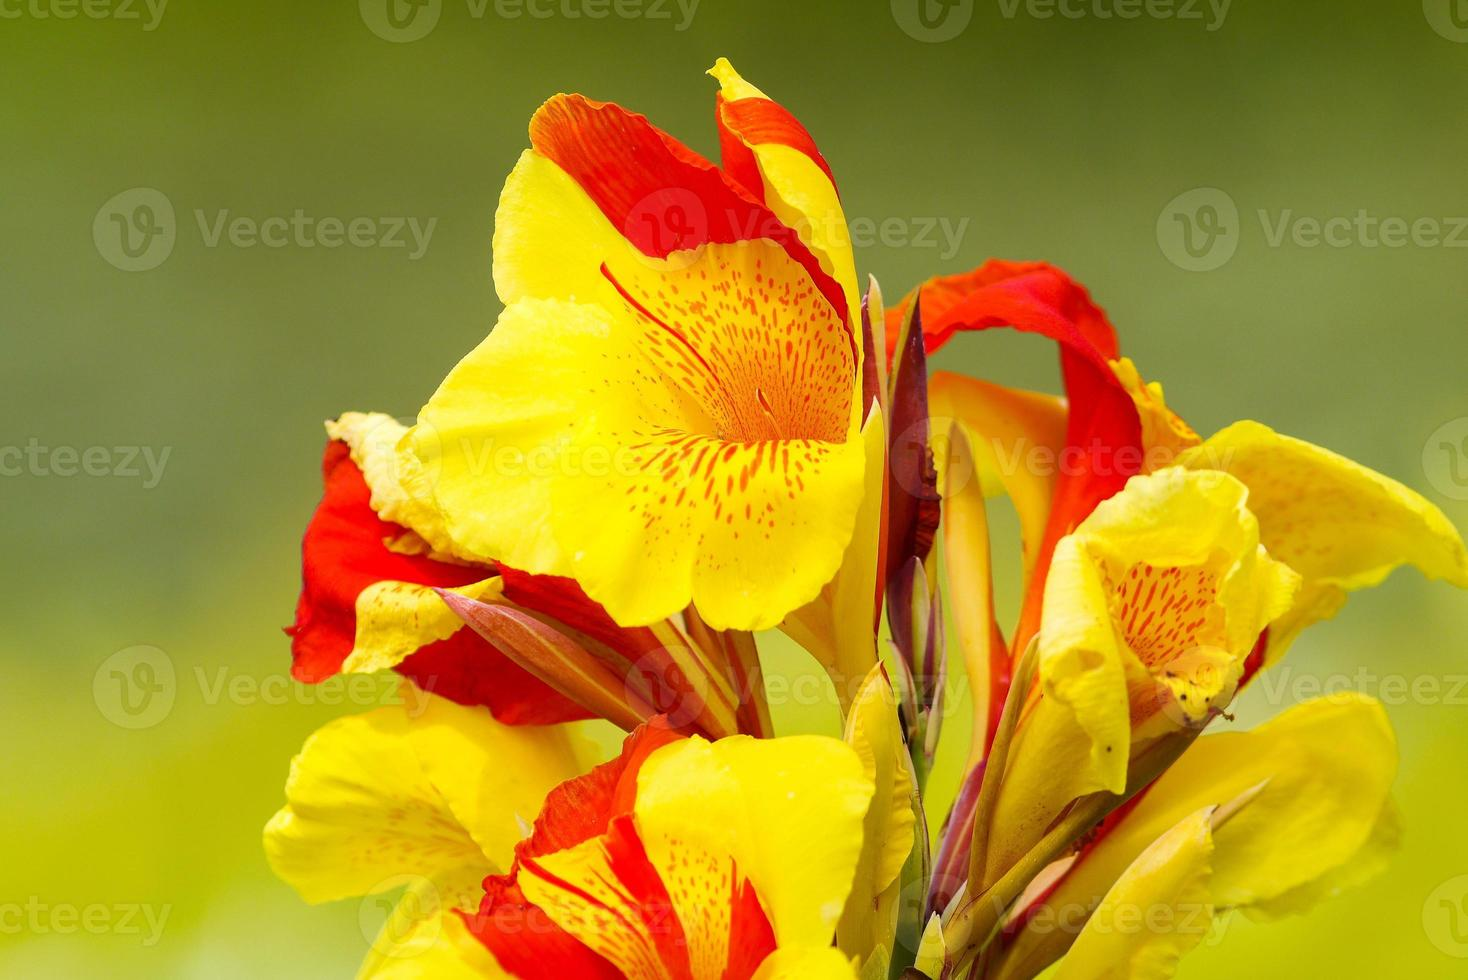 cannas lilly foto